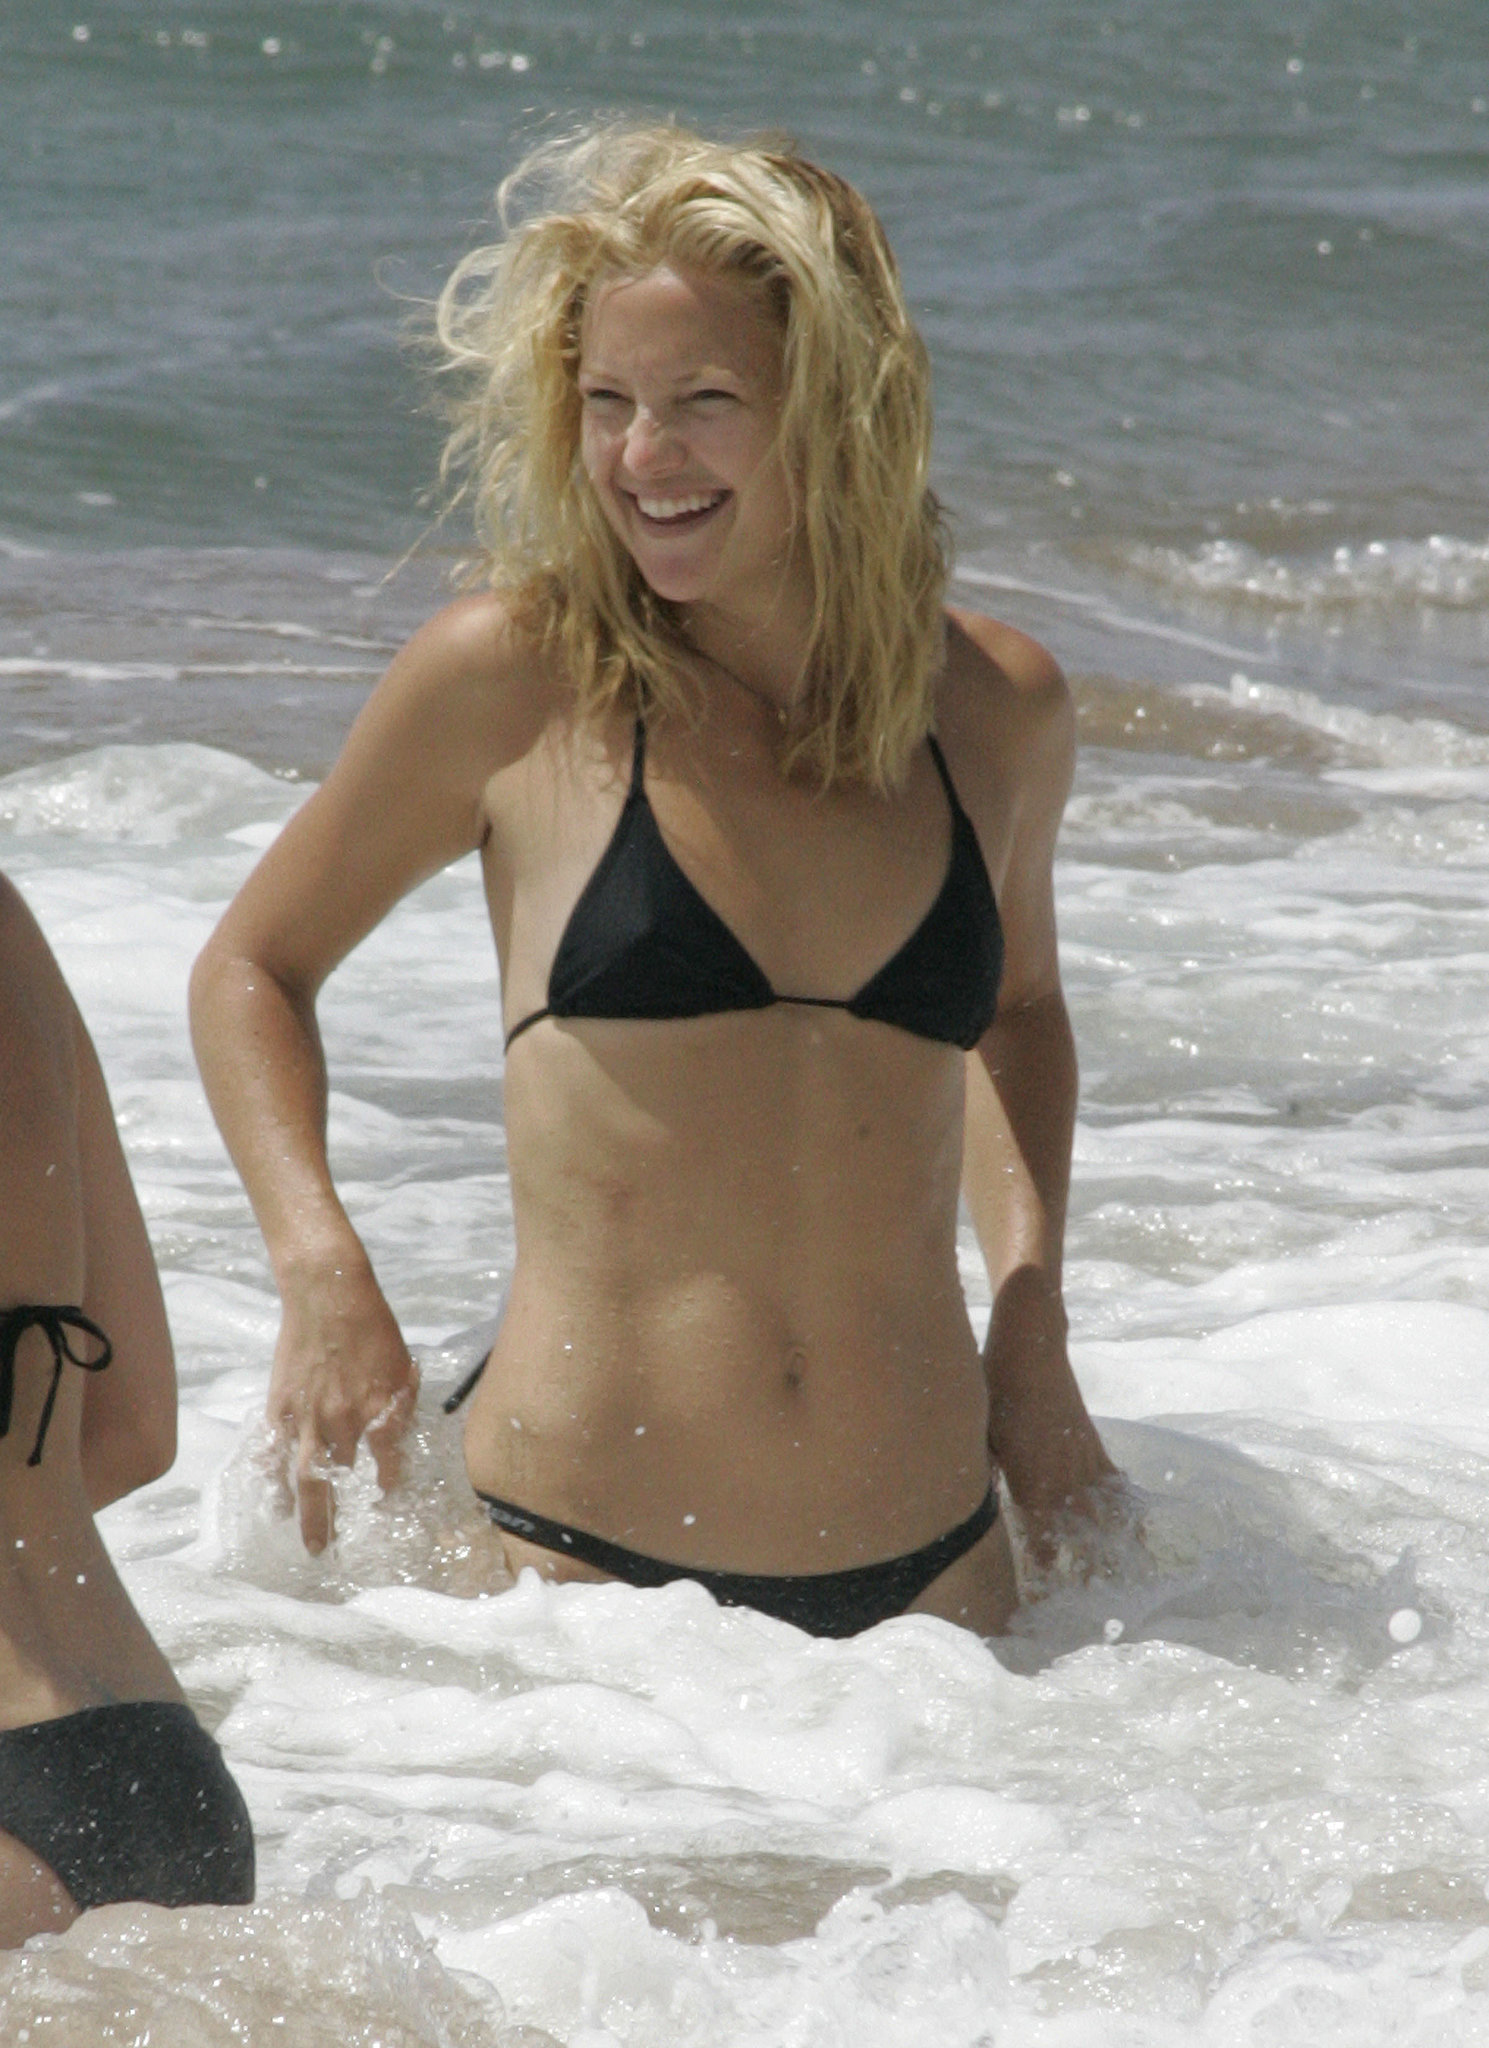 In September 2006, Kate splashed around the waves in Hawaii.